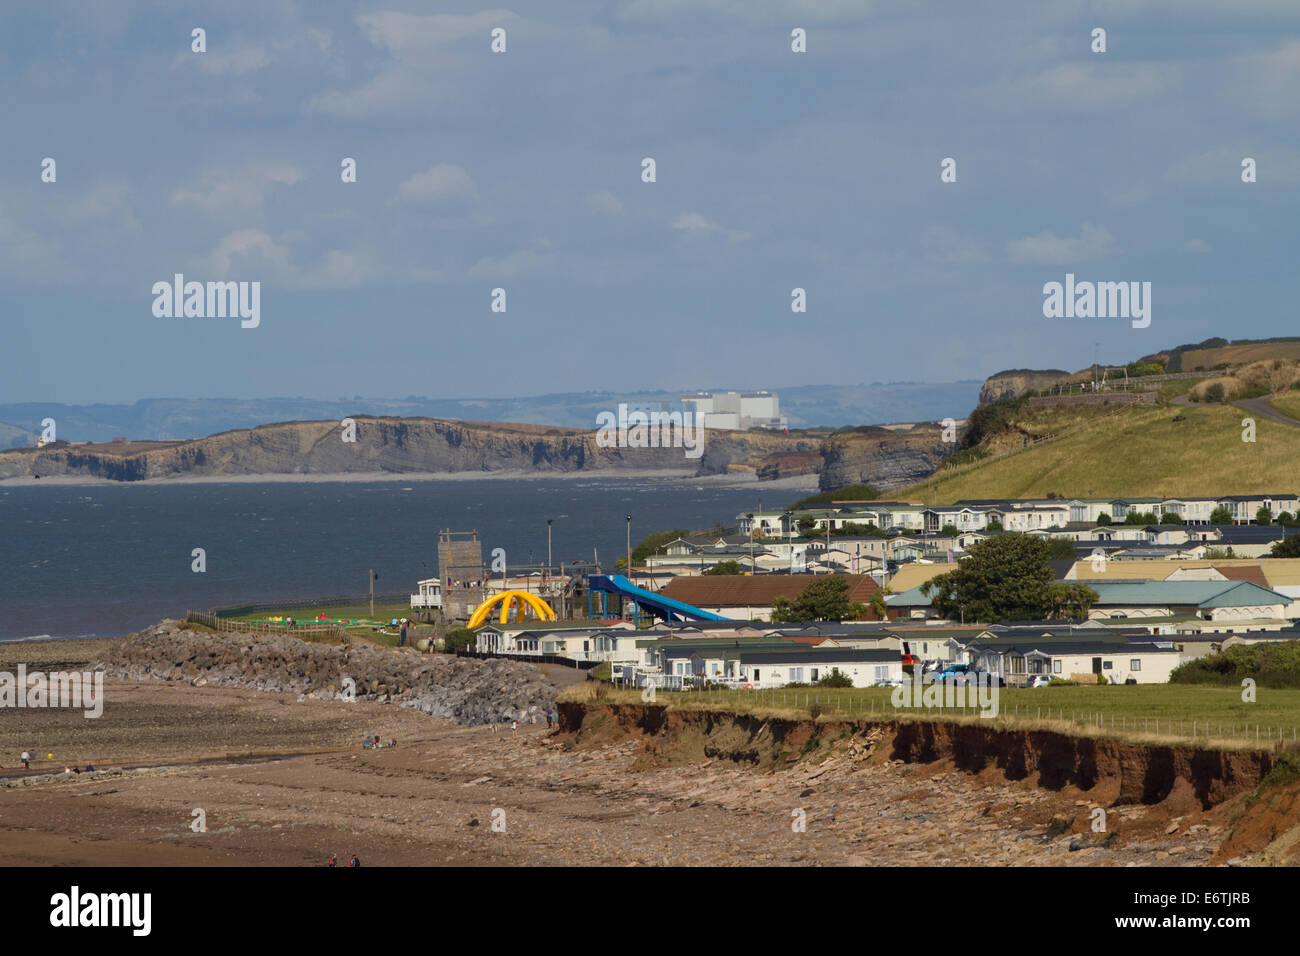 Caravan park with Hinkley Point Nuclear power station in background. Bristol Channel. Somerset - Stock Image